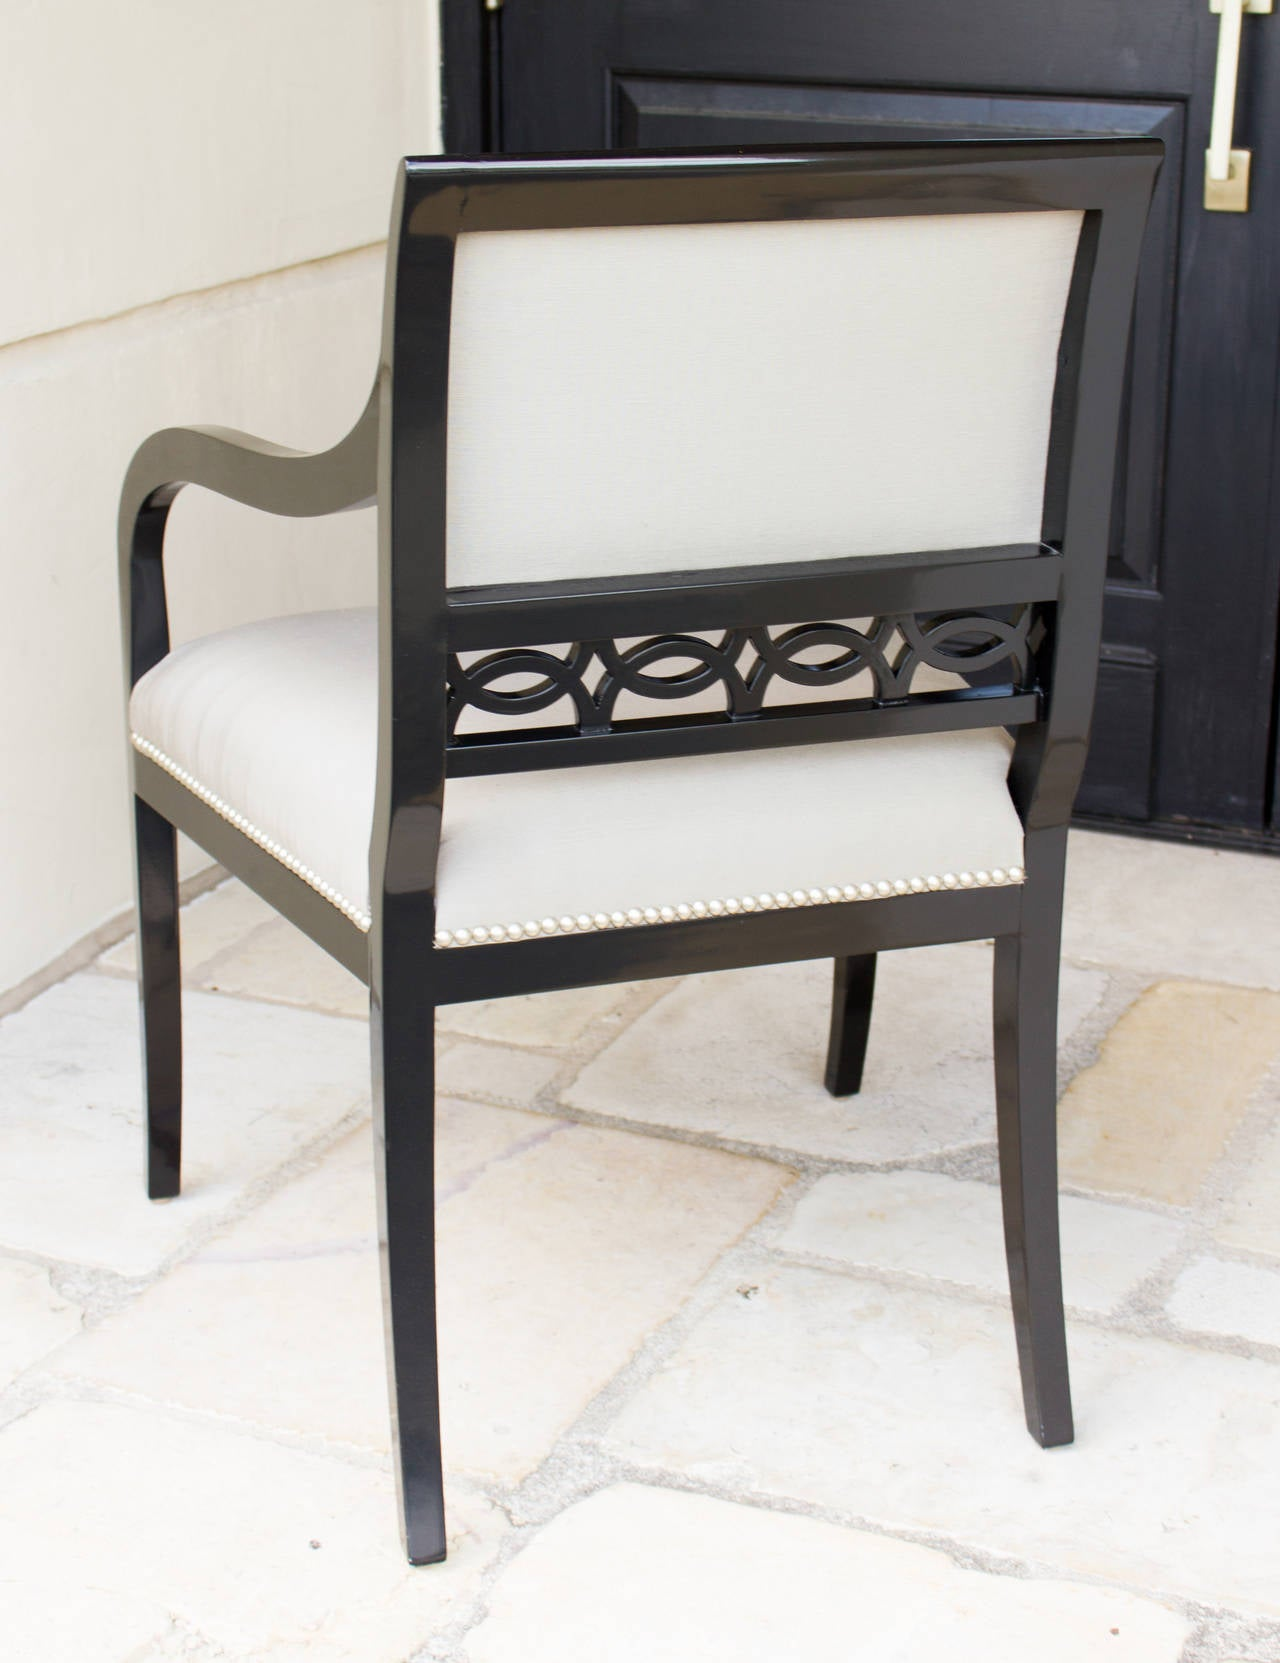 Black lacquer studded. A pair of studded Chandler armchairs from the Robert Brown Collection. The chair's frame is finished in black lacquer. Designed by Robert Brown in Atlanta, handcrafted in England.